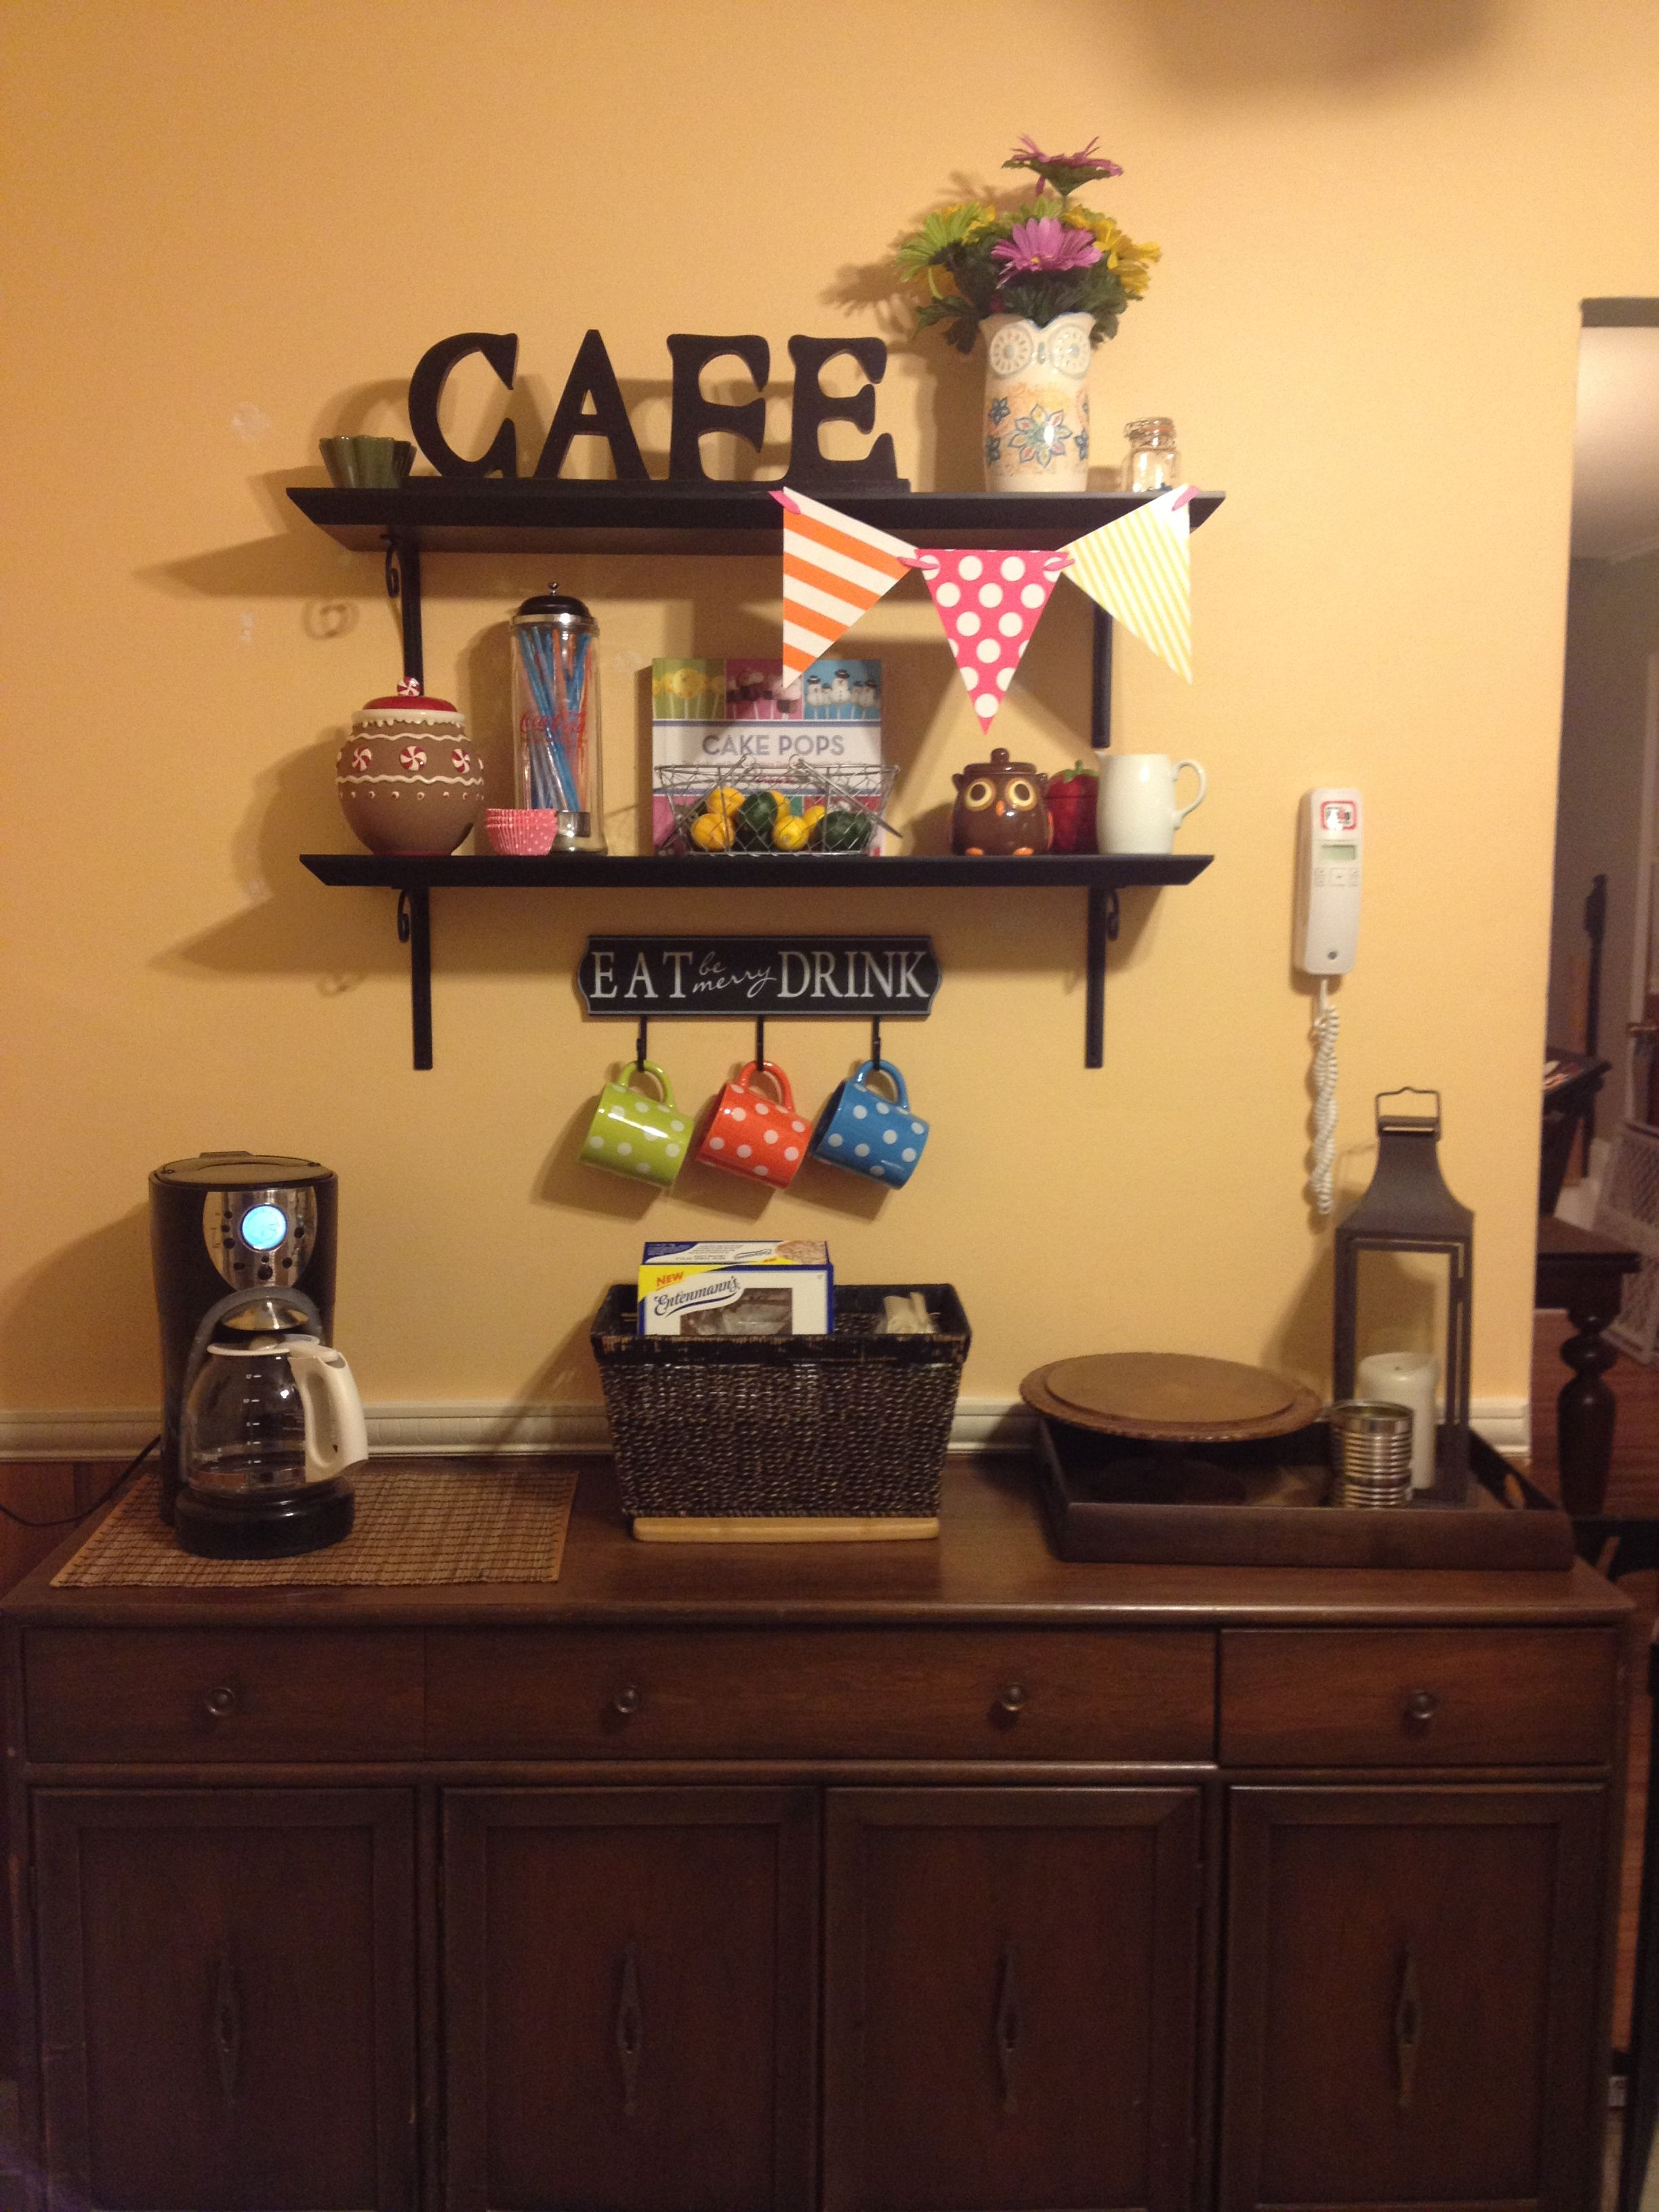 Coffee Decoration For Kitchen Garbage Cans Decor Corner Minus The Flags Wtf Is